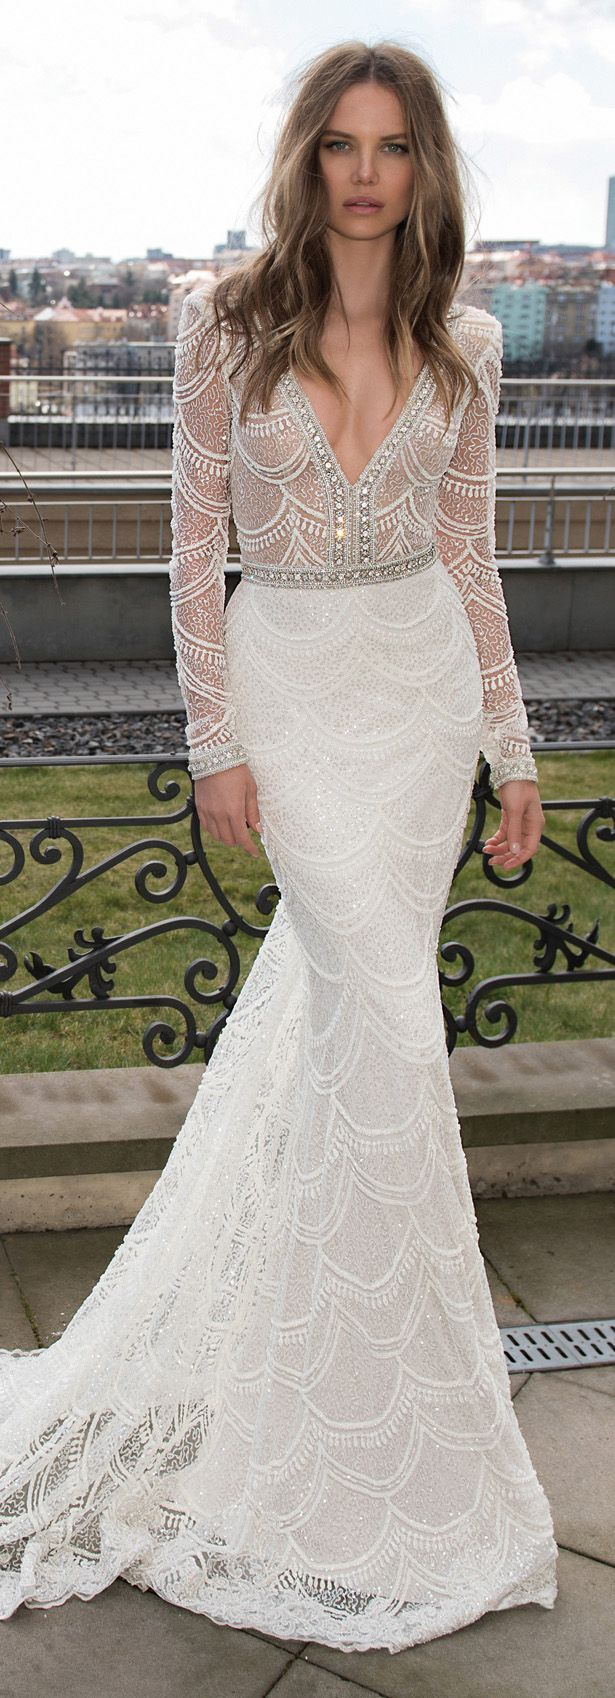 Best 25+ Berta bridal ideas on Pinterest | Wedding dresses berta ...